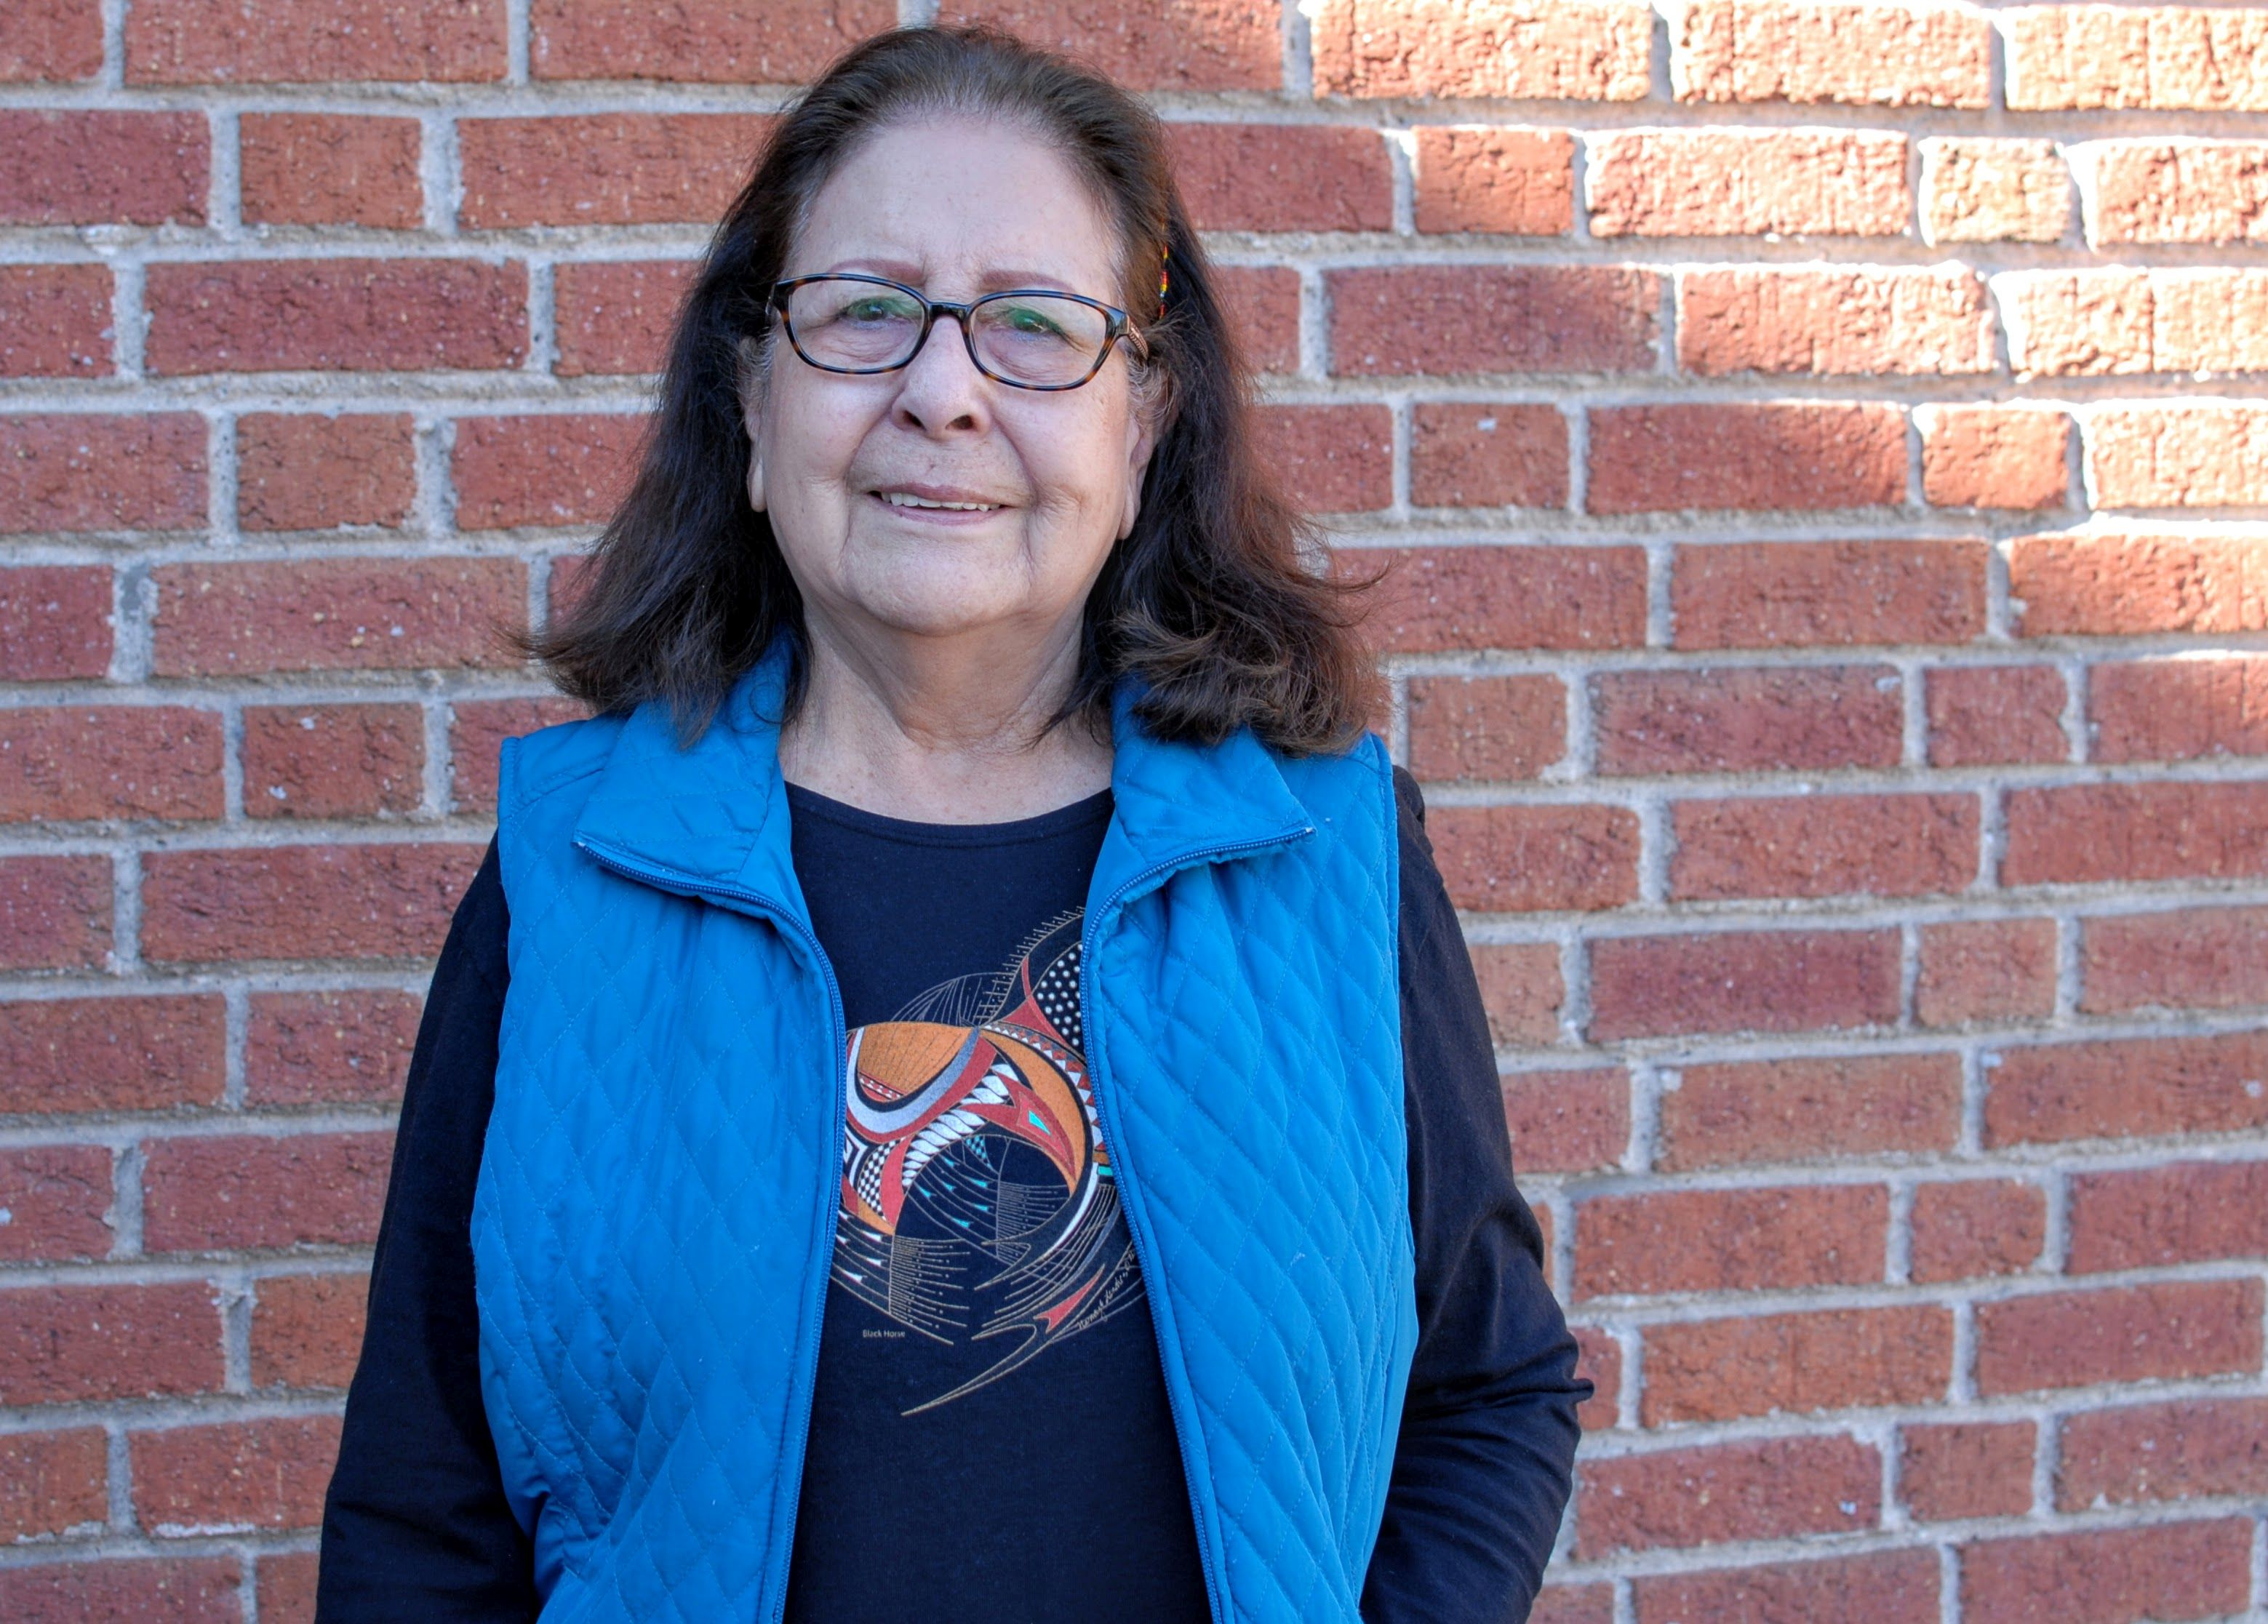 Doris Goodteacher outside a library in Denver on Nov. 14, 2019. Goodteacher's family relocated from a reservation to Denver in the 1950s as part of a  Bureau of Indian Affairs program.